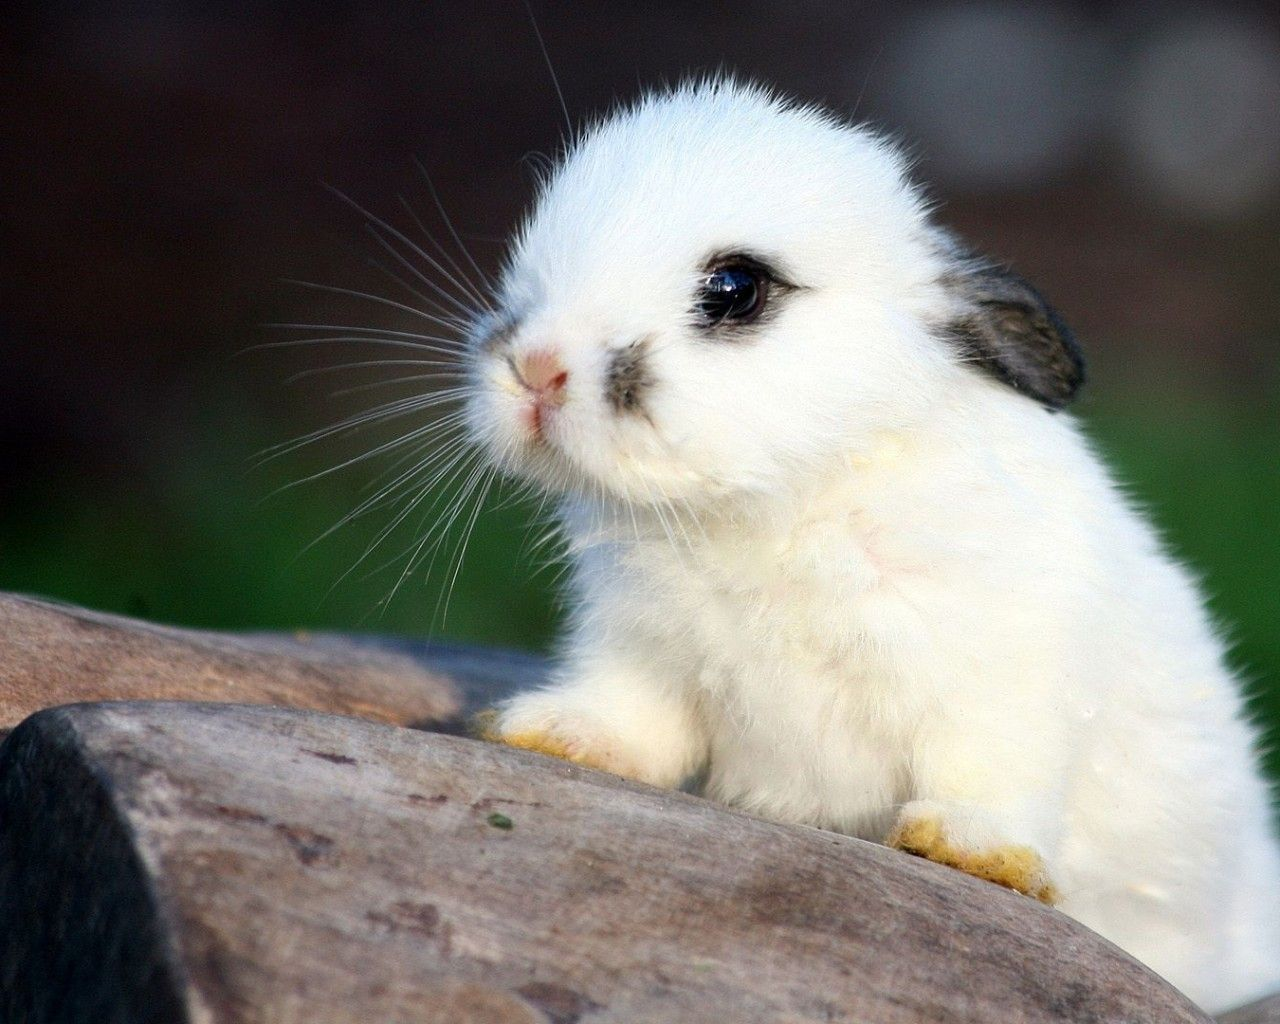 Cute White Baby Bunnies Hd Pictures 4 Hd Wallpapers Lzamgs Com Cute Baby Bunnies Cute Animals Cute Baby Animals